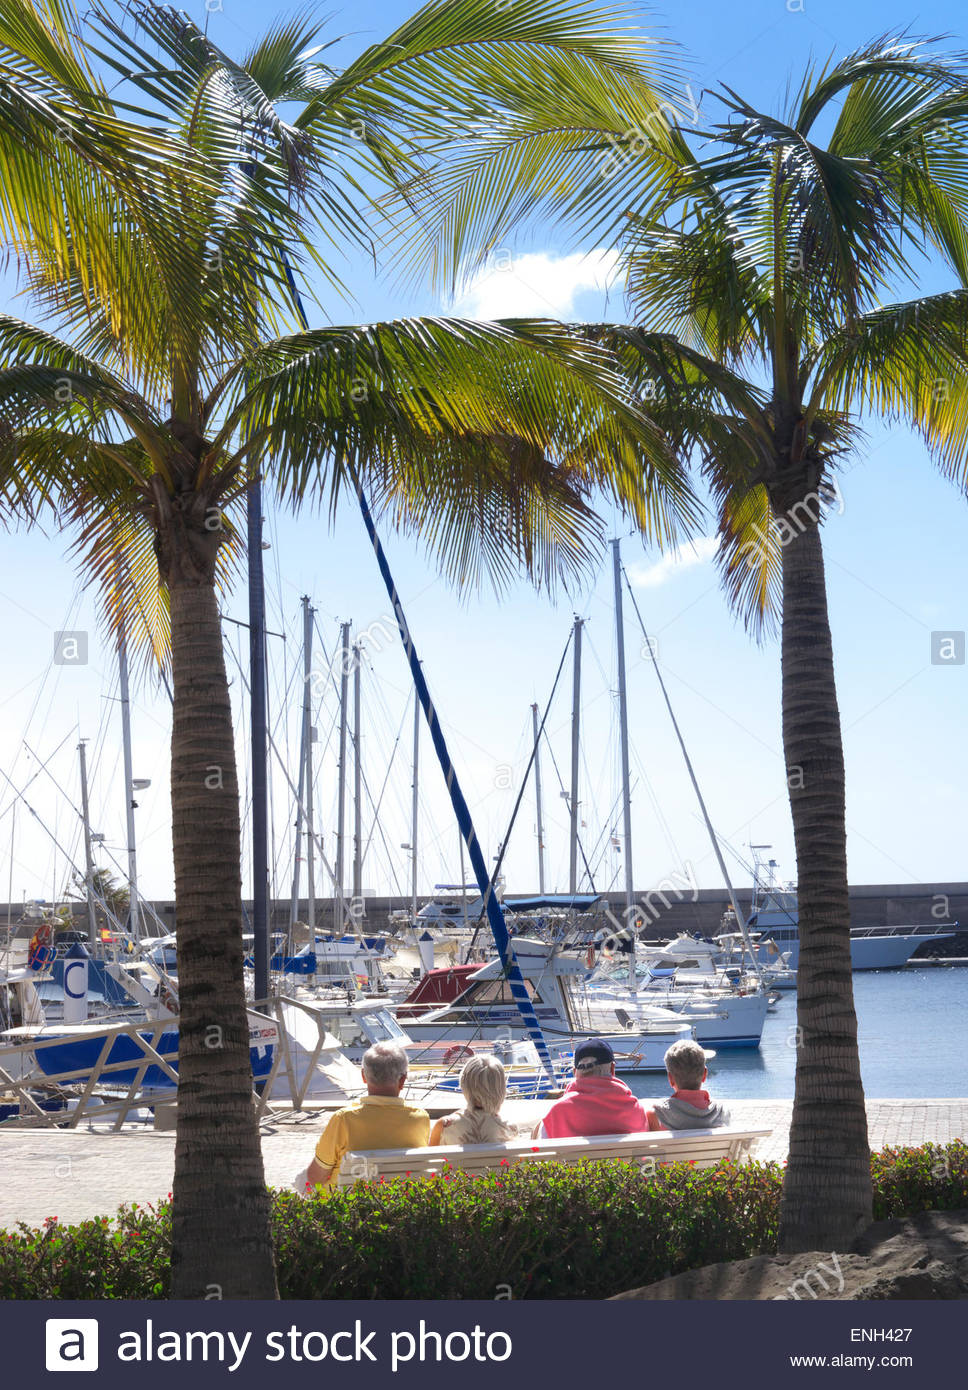 Group of elderly pensioner holidaymakers sitting on bench framed by palm trees enjoying marina view Puerto Calero - Stock Image